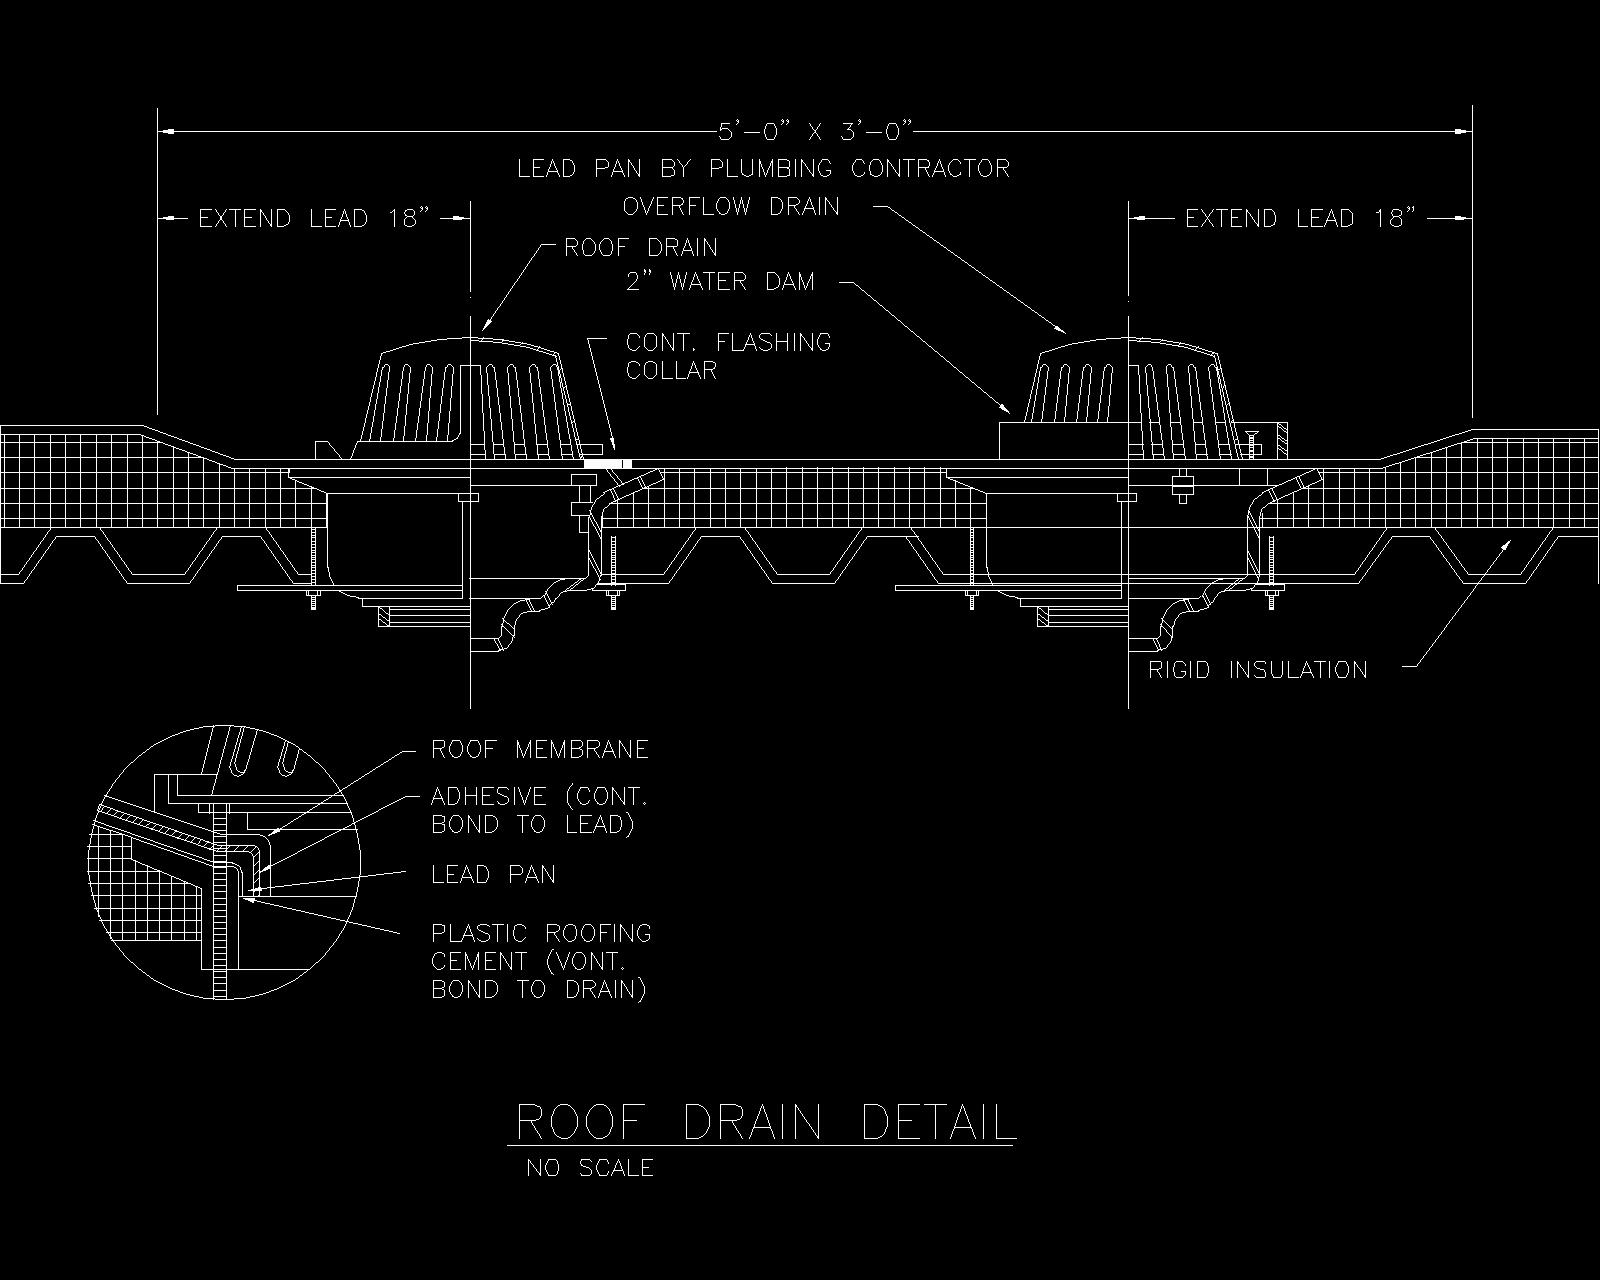 Autocad Wallpapers Amp Technical Drawing Wallpapers For Download